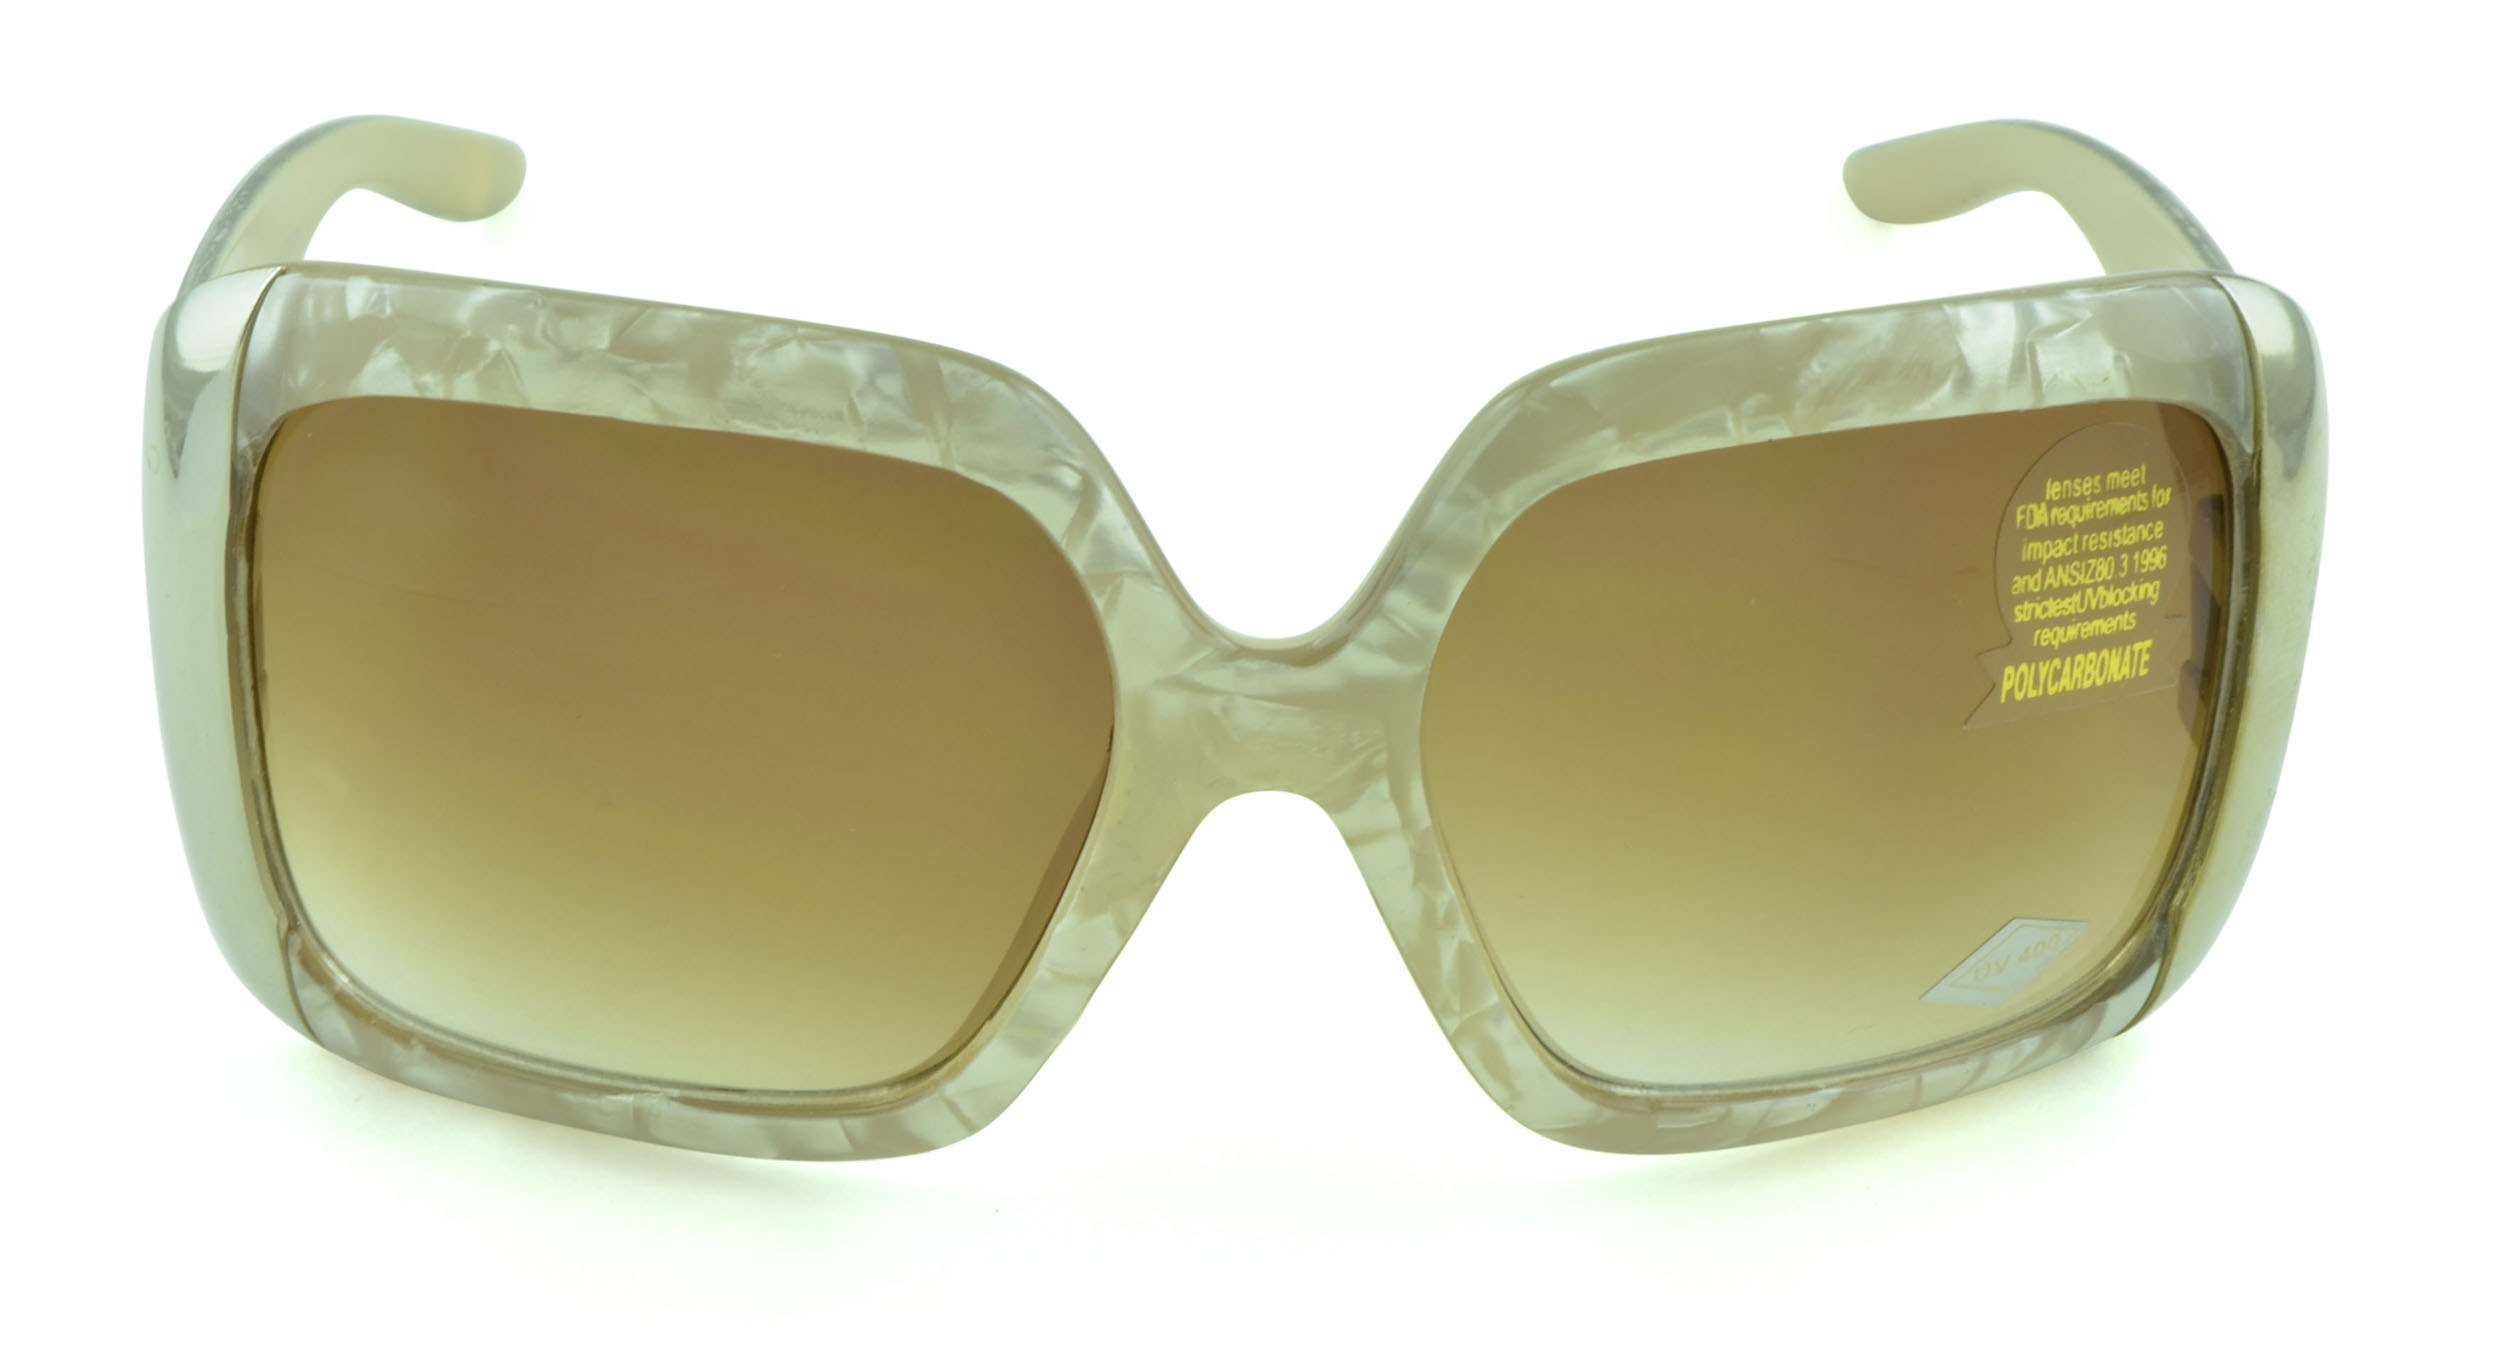 Belle Donne- Oversize Large Women's Fashion Celebrity Sunglasses - Clear Butterfly Oversized Sunglasses for Women and Girls - Trendy Ladies Sunglasses - UV Protection - Polarized - Ivory